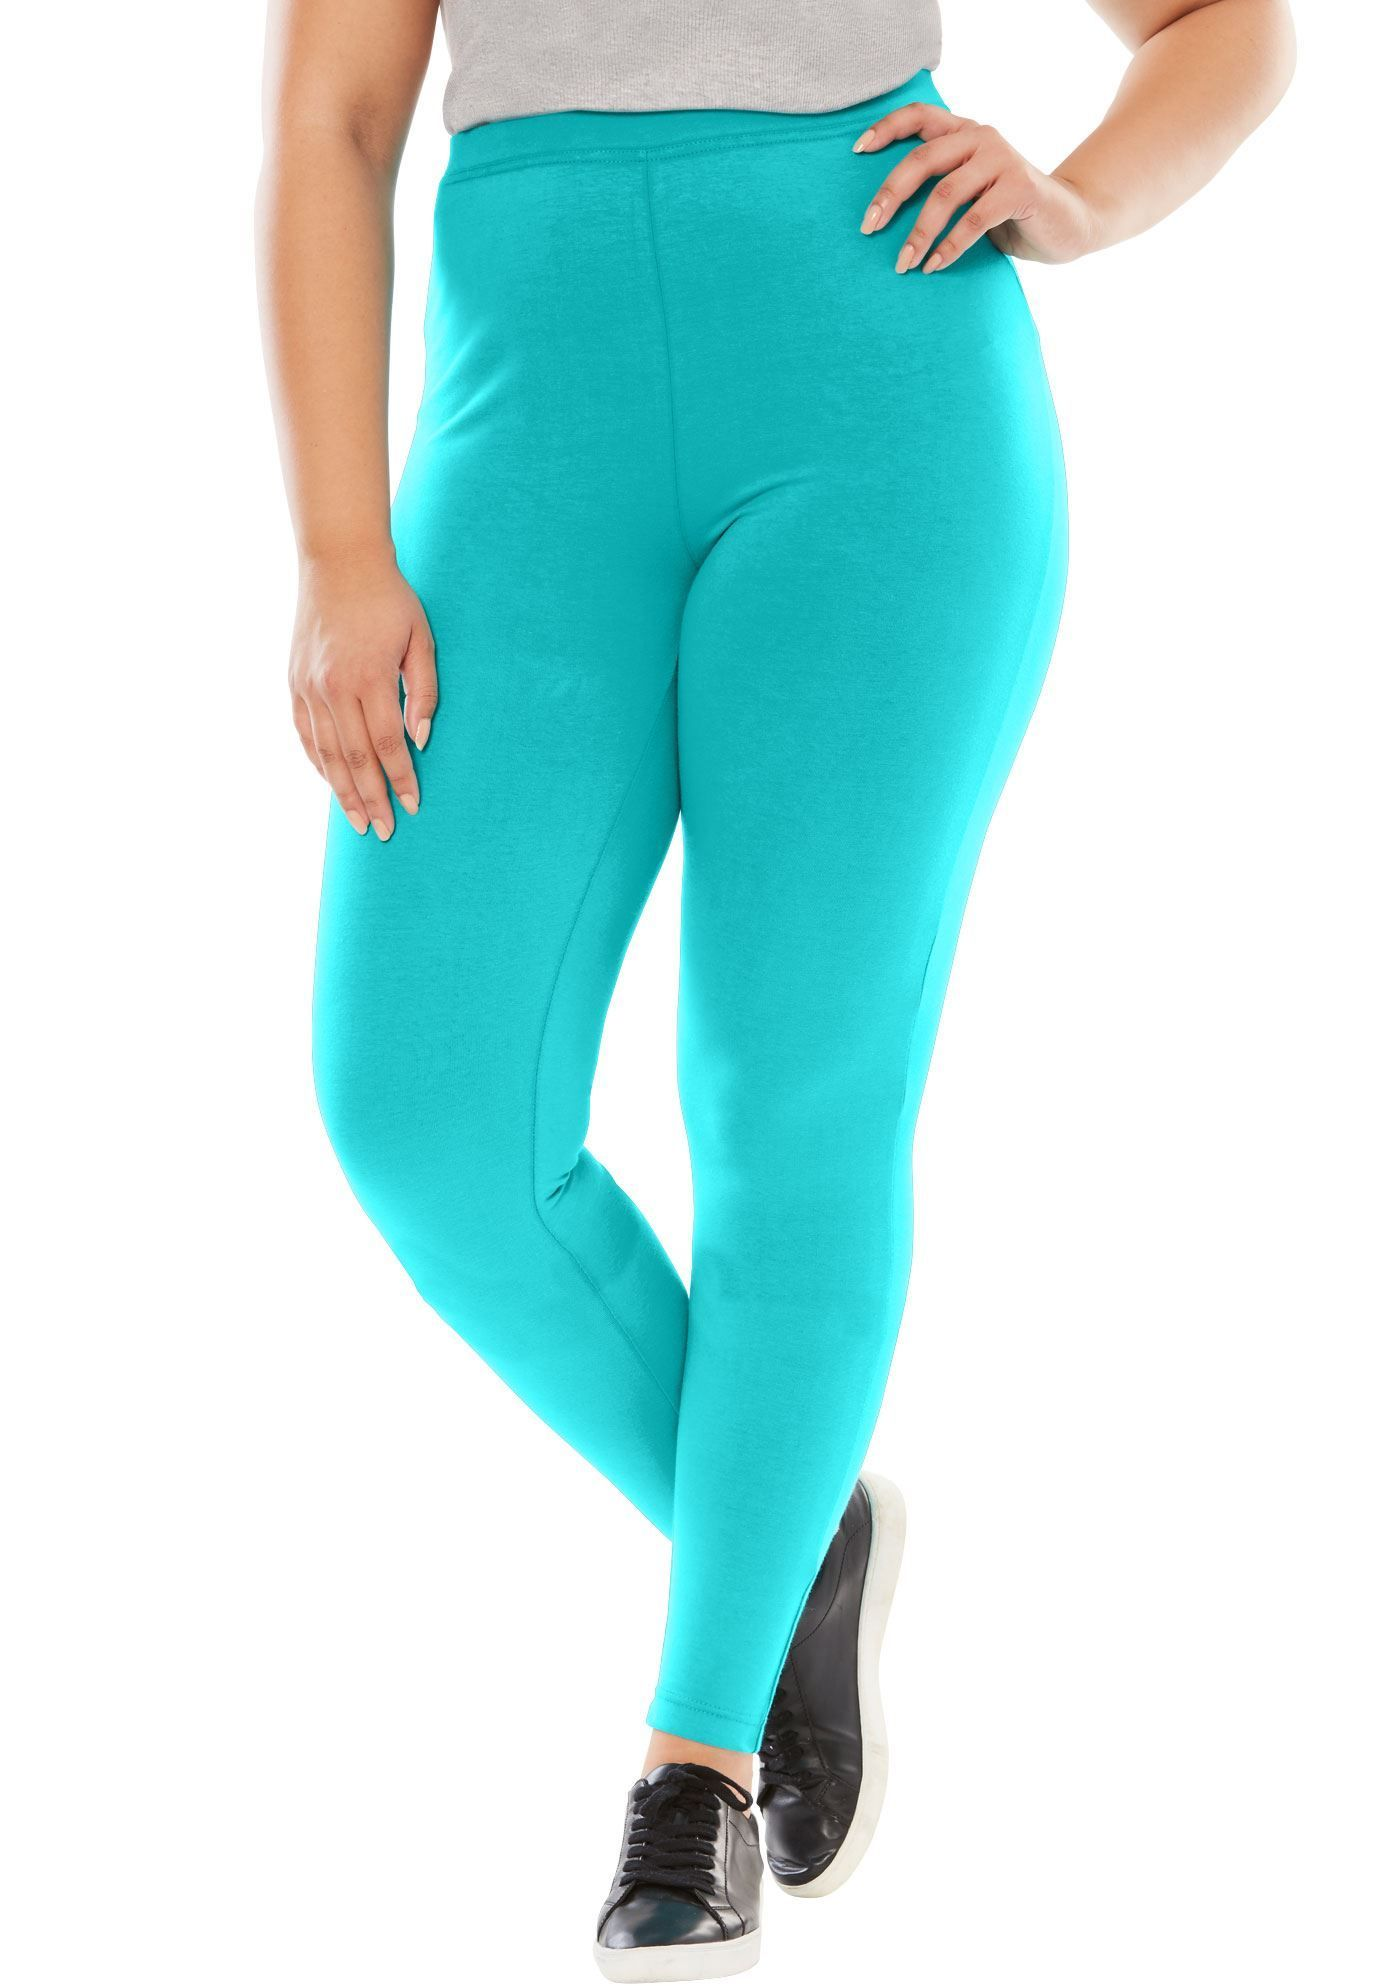 7e228cfc1ce Tall leggings in stretch knit - Women s Plus Size Clothing ...